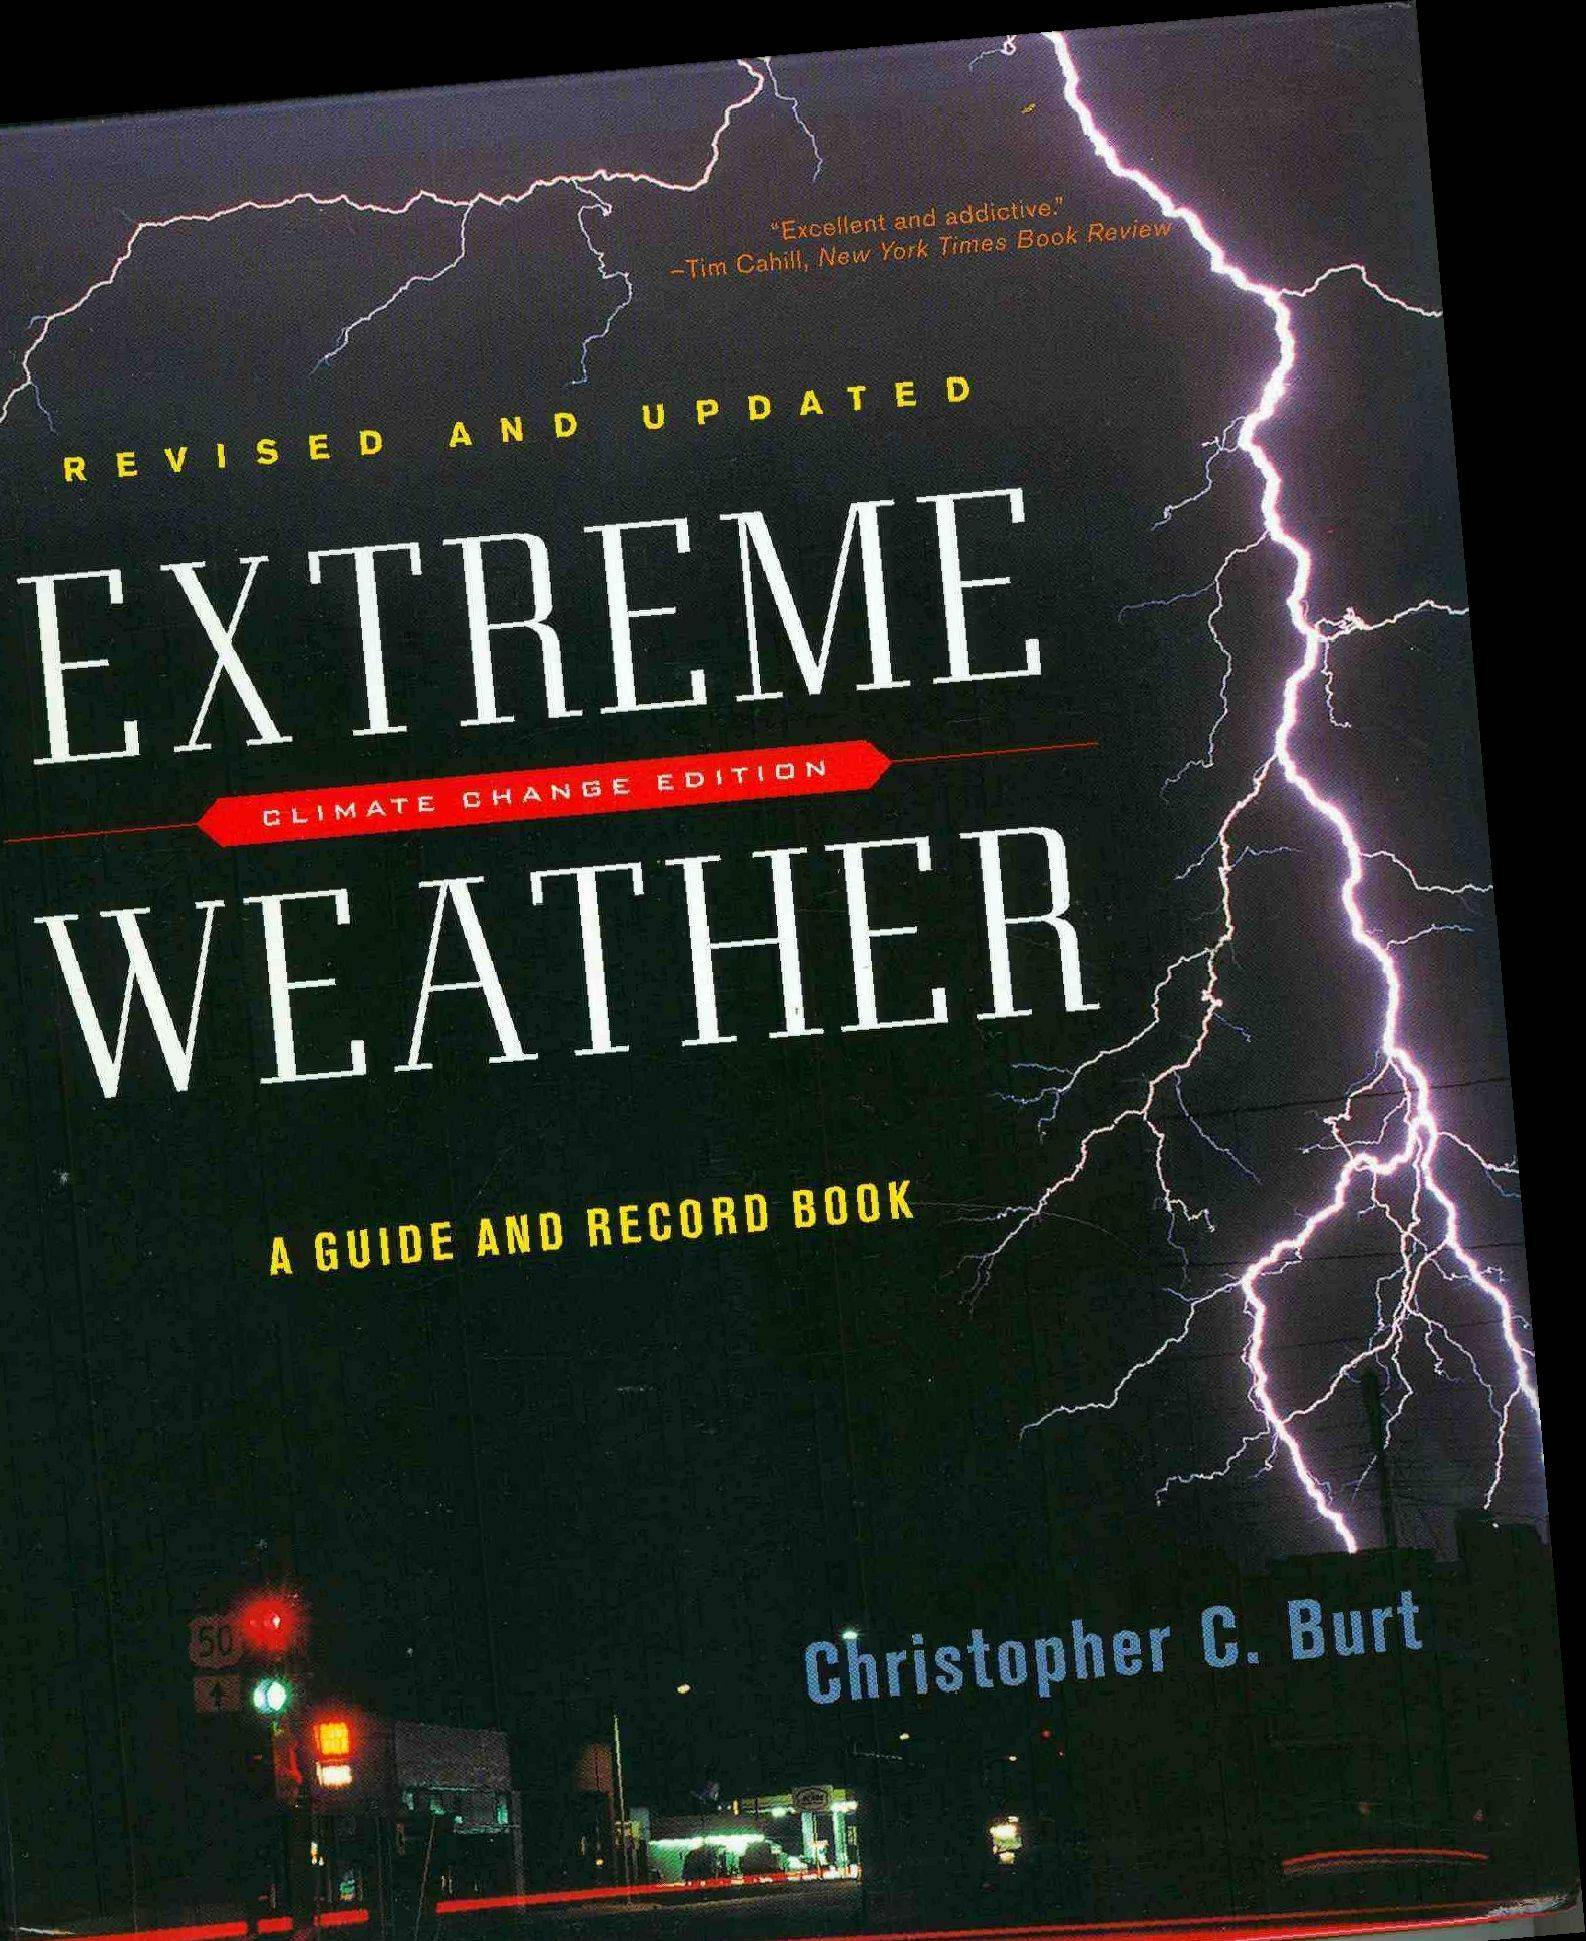 The dramatic and deadly Hurricane Sandy is just the latest in centuries of shocking weather events. In this book, weather historian, author and blogger Christopher C. Burt recaps everything from tornadoes and hurricanes to ball lightning and dust storms.